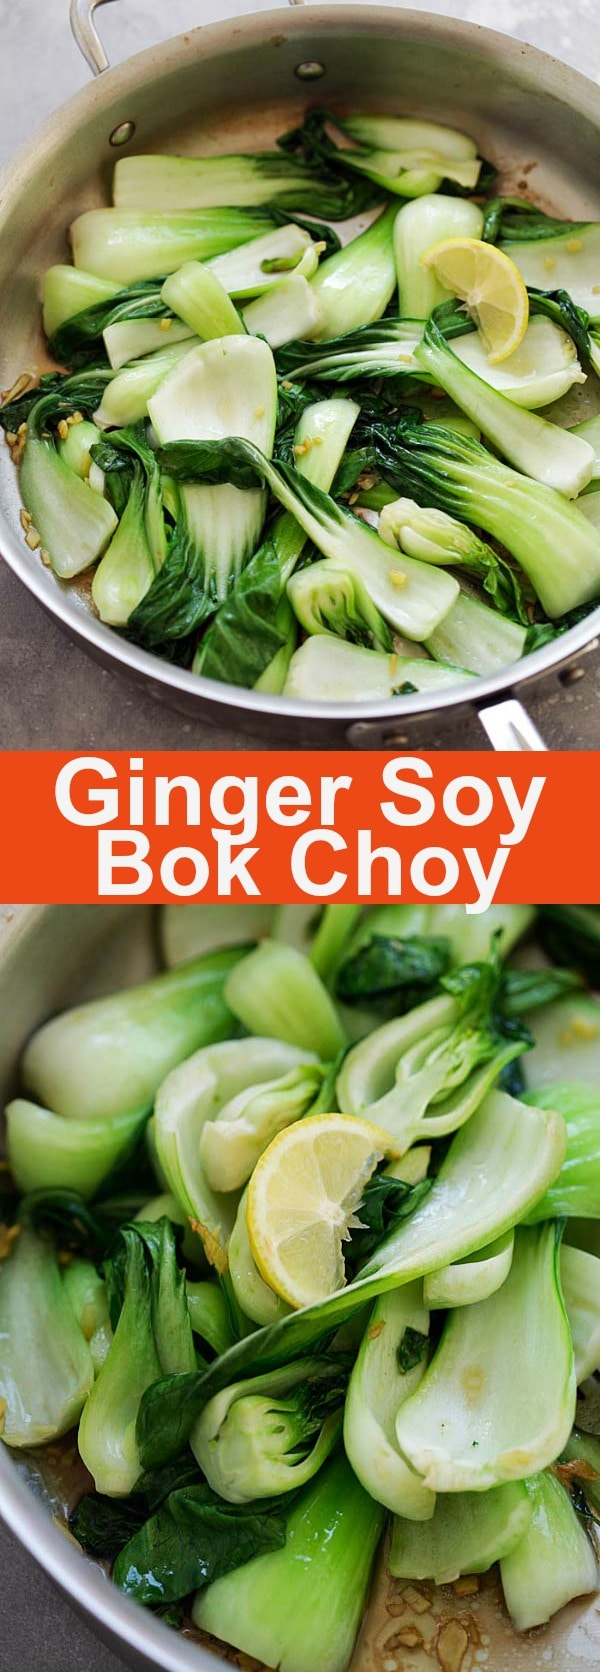 Ginger Soy Bok Choy - the easiest and healthiest bok choy recipe ever. Calls for only 5 ingredients and 10 minutes to make. It's so delicious   rasamalaysia.com